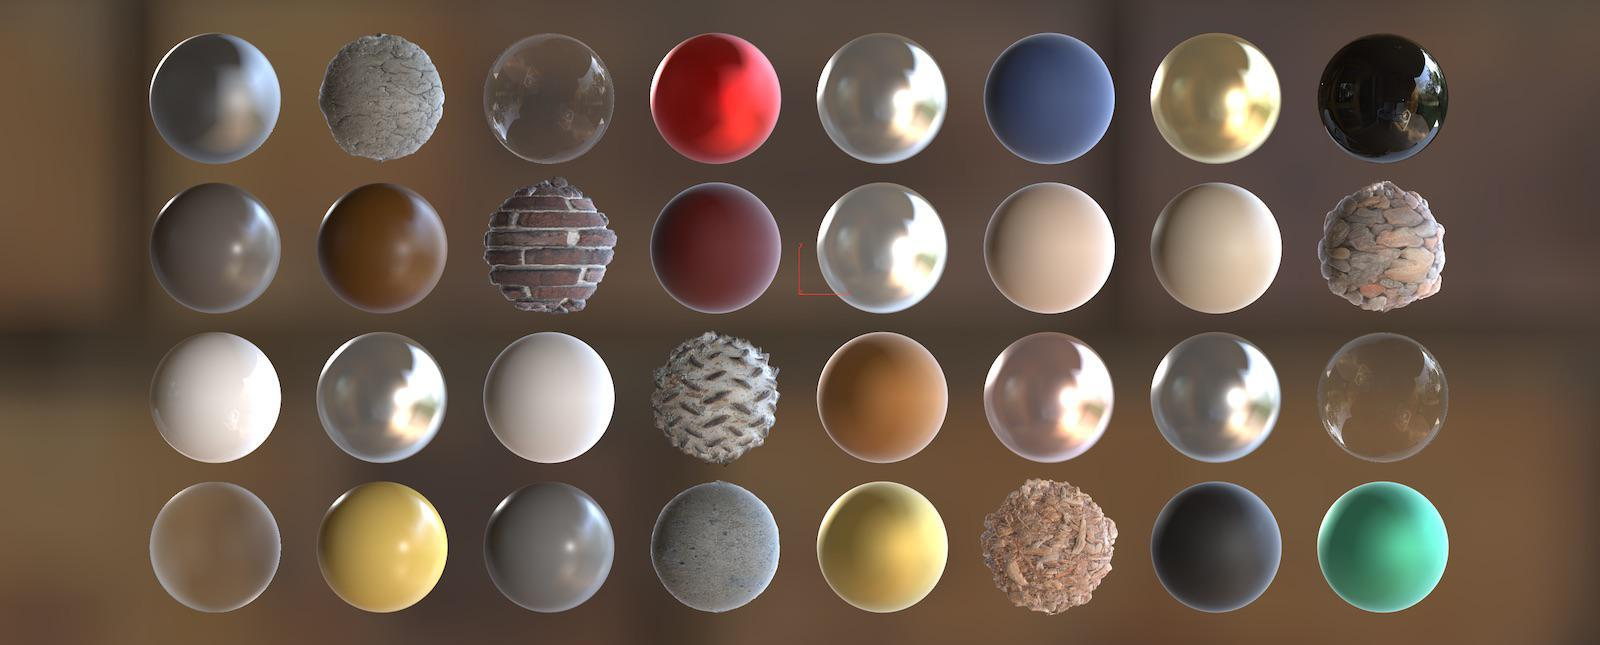 OpenGL Shaders